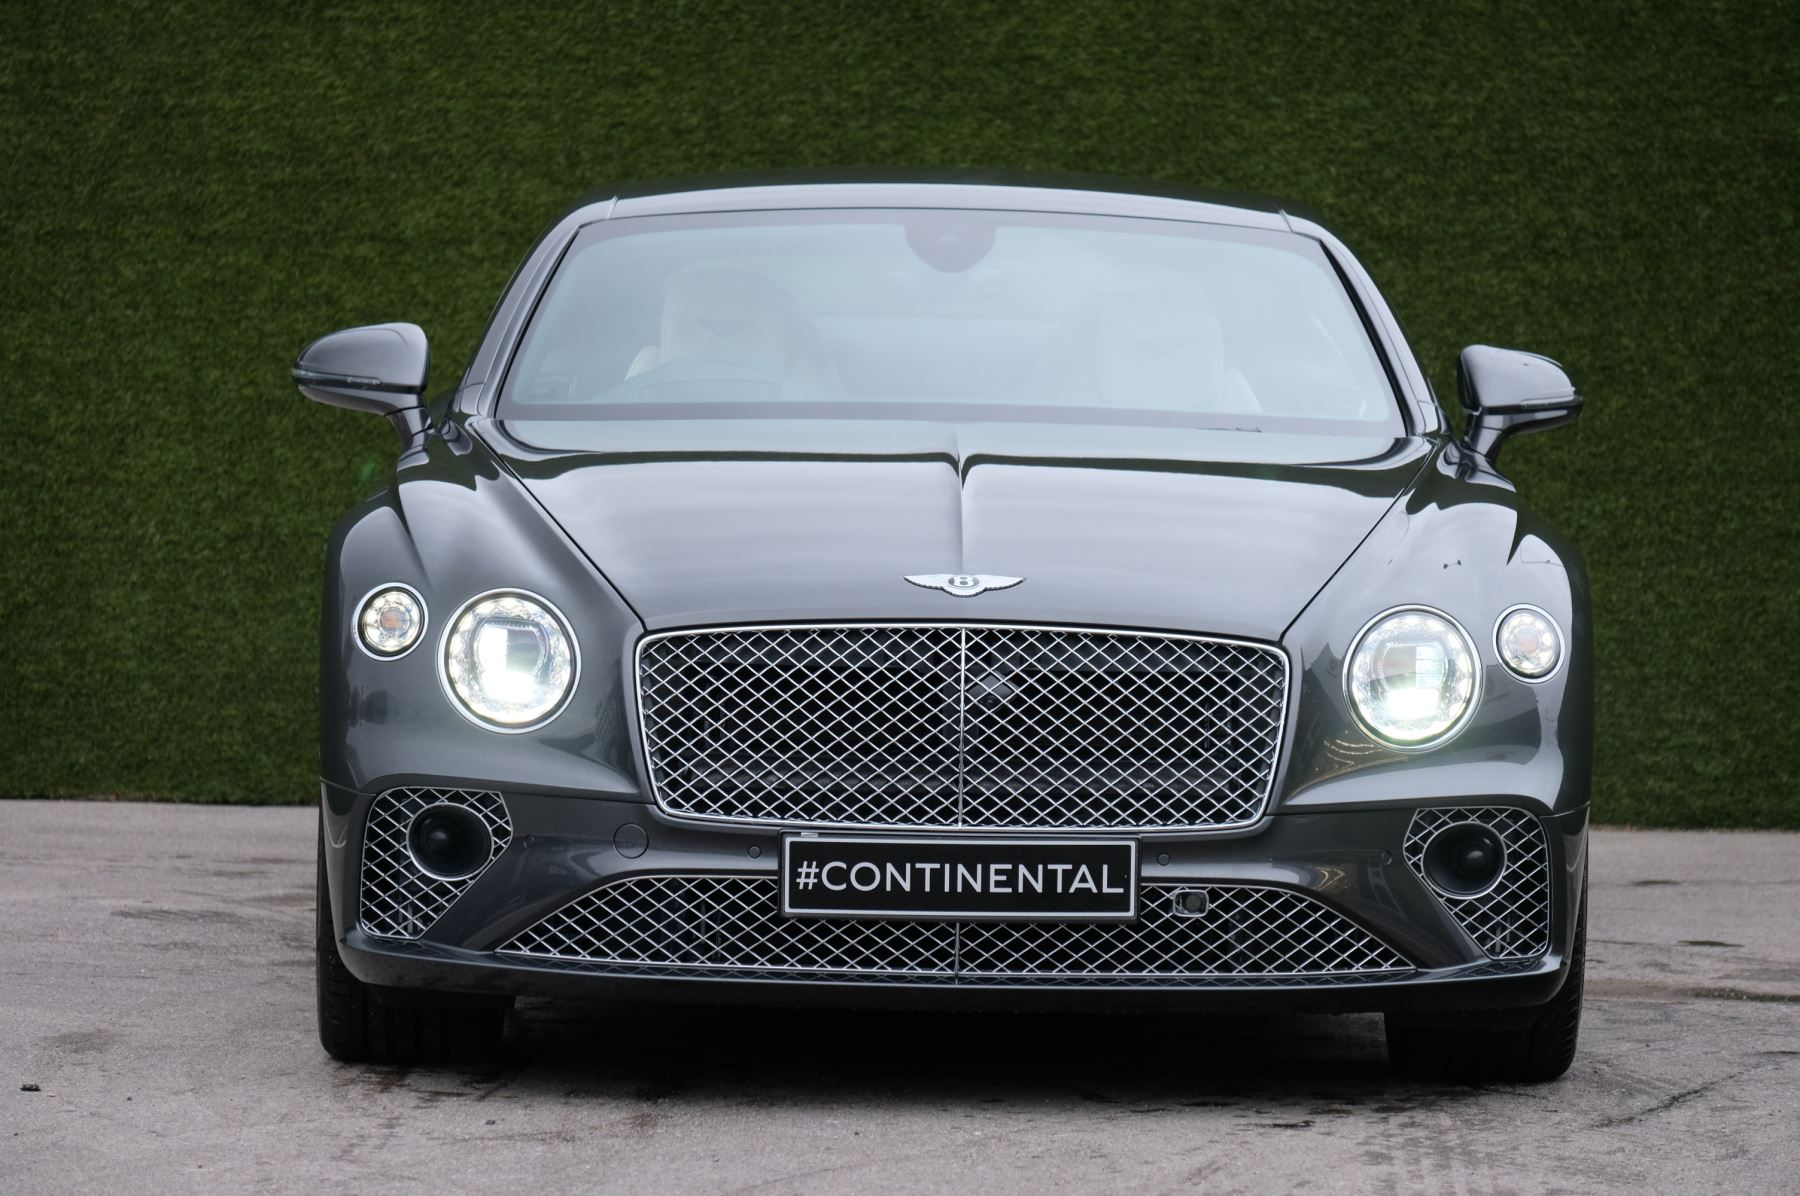 Bentley Continental GT 4.0 V8 Mulliner Driving Spec 2dr Auto [City+Tour] image 2